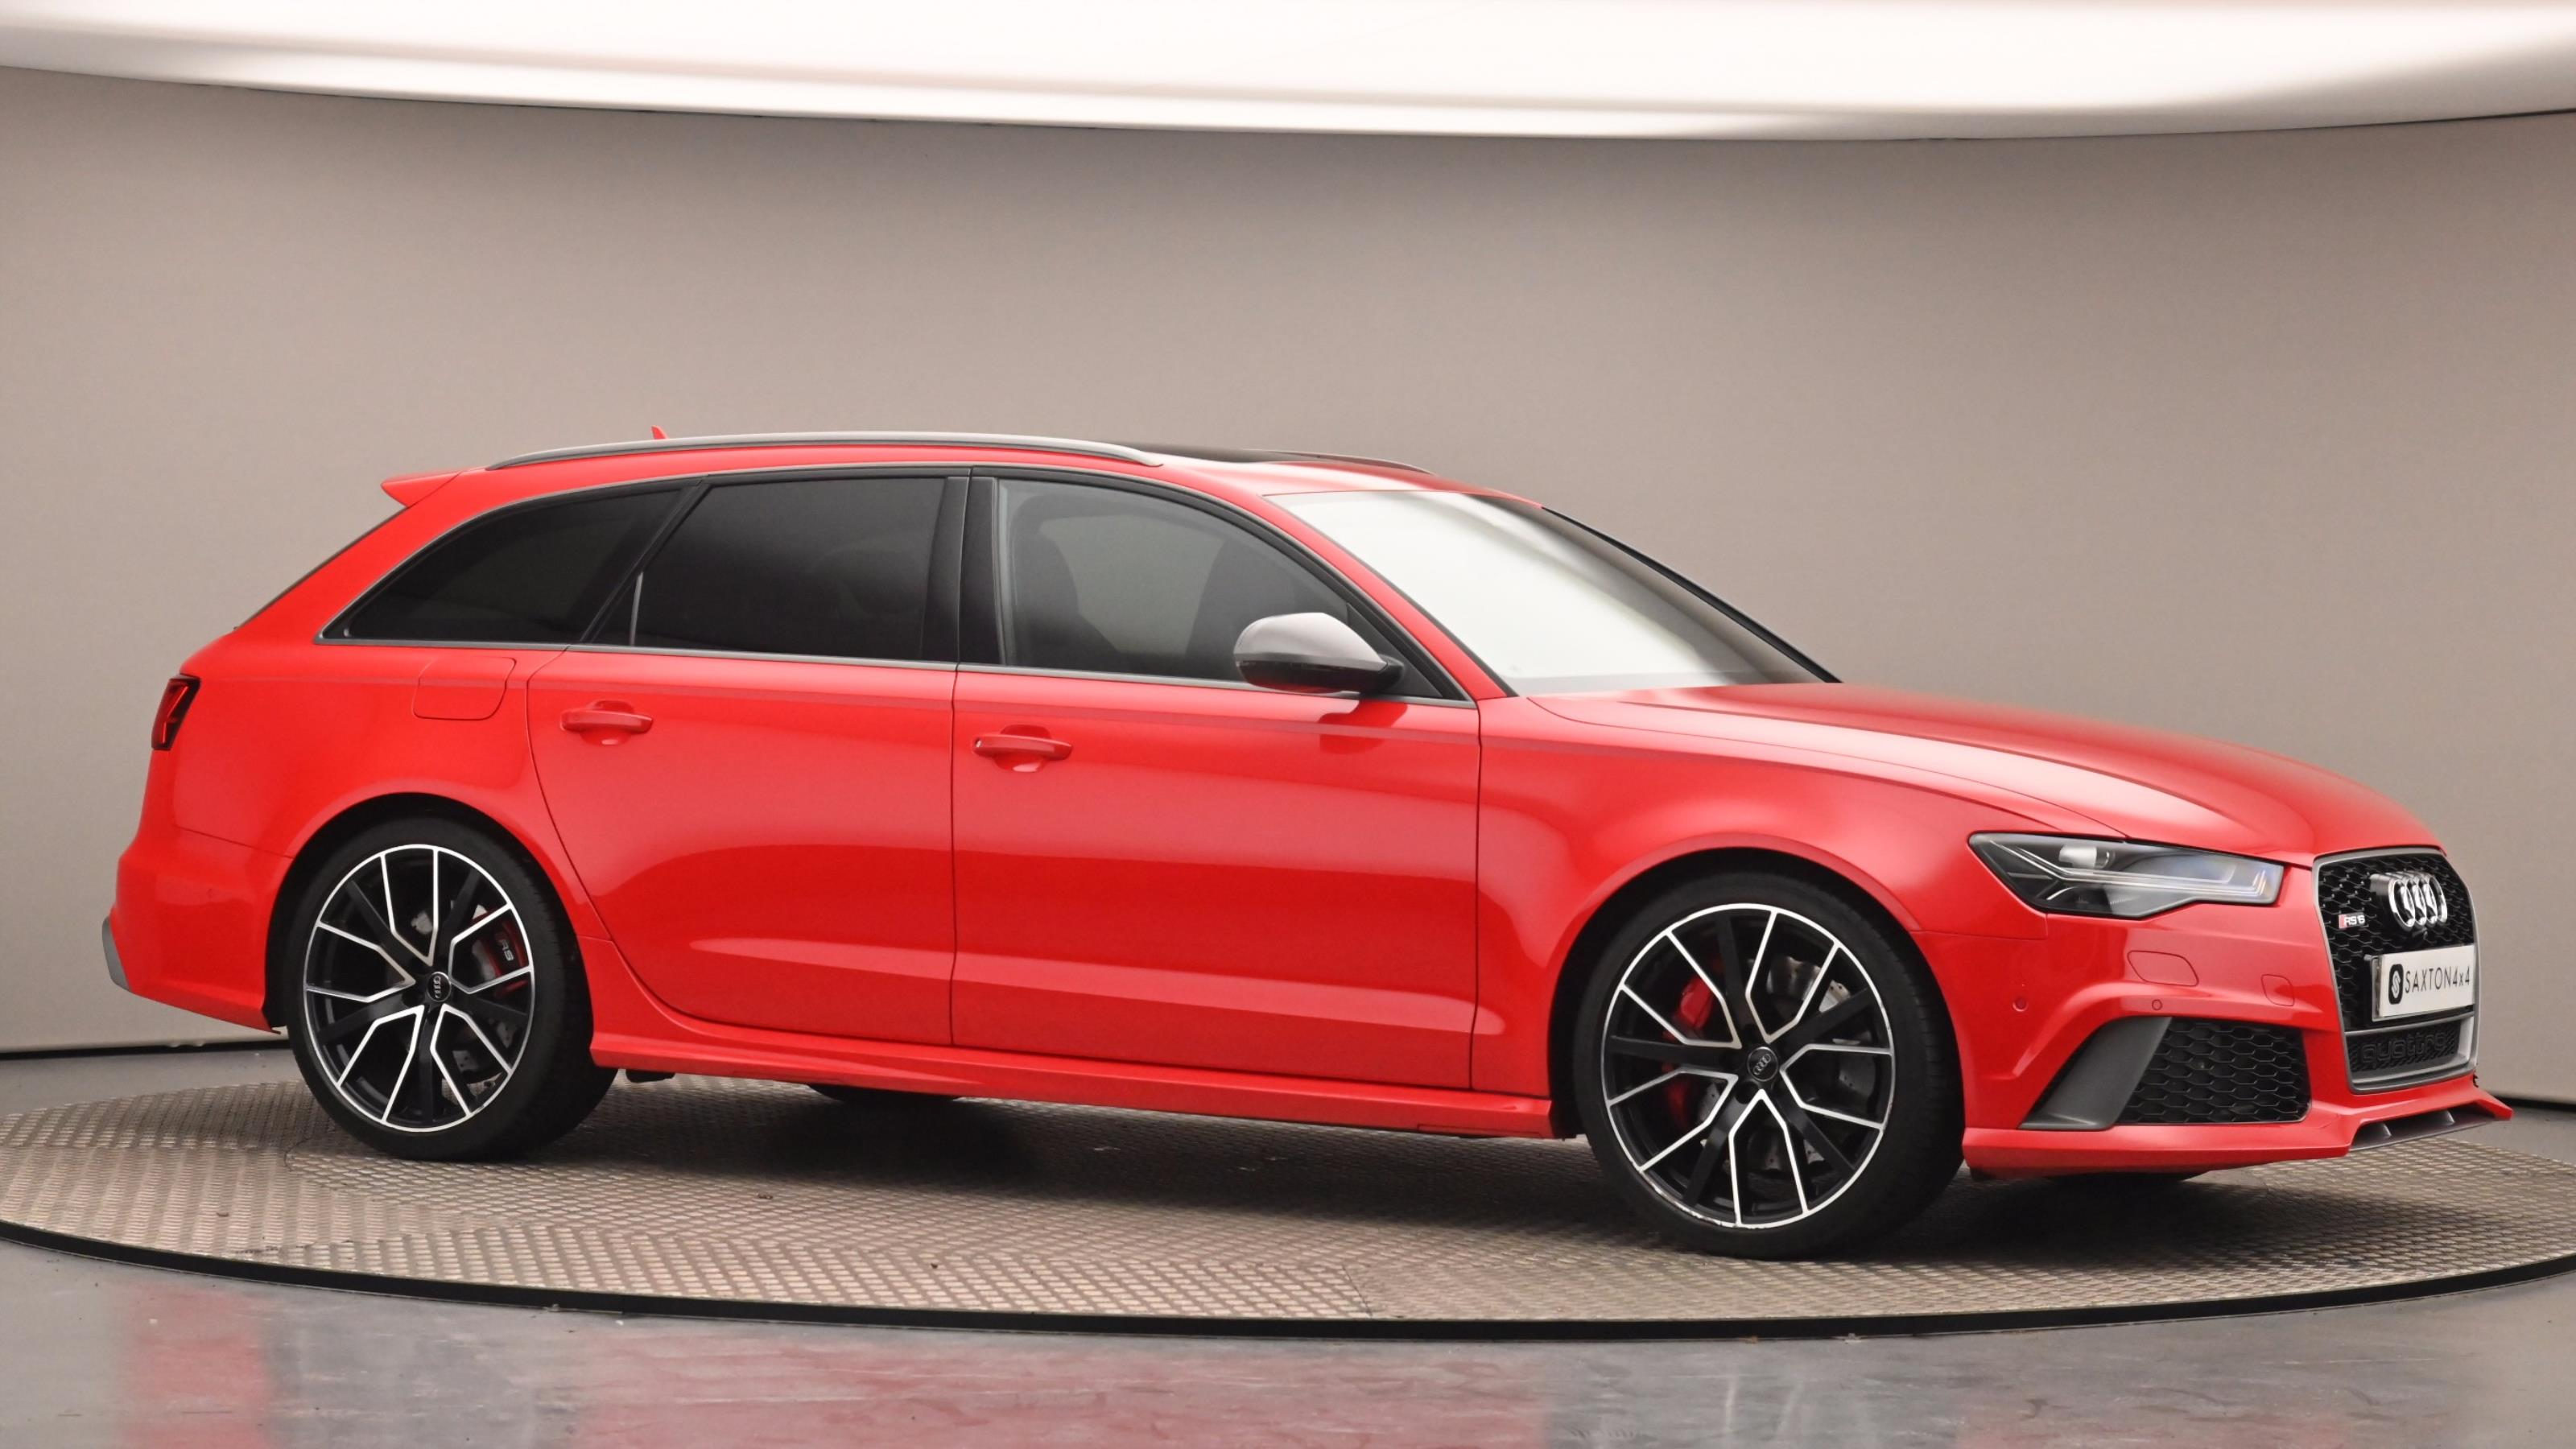 Used 2017 Audi RS6 4.0T FSI Quattro RS 6 Performance 5dr Tip Auto Red at Saxton4x4